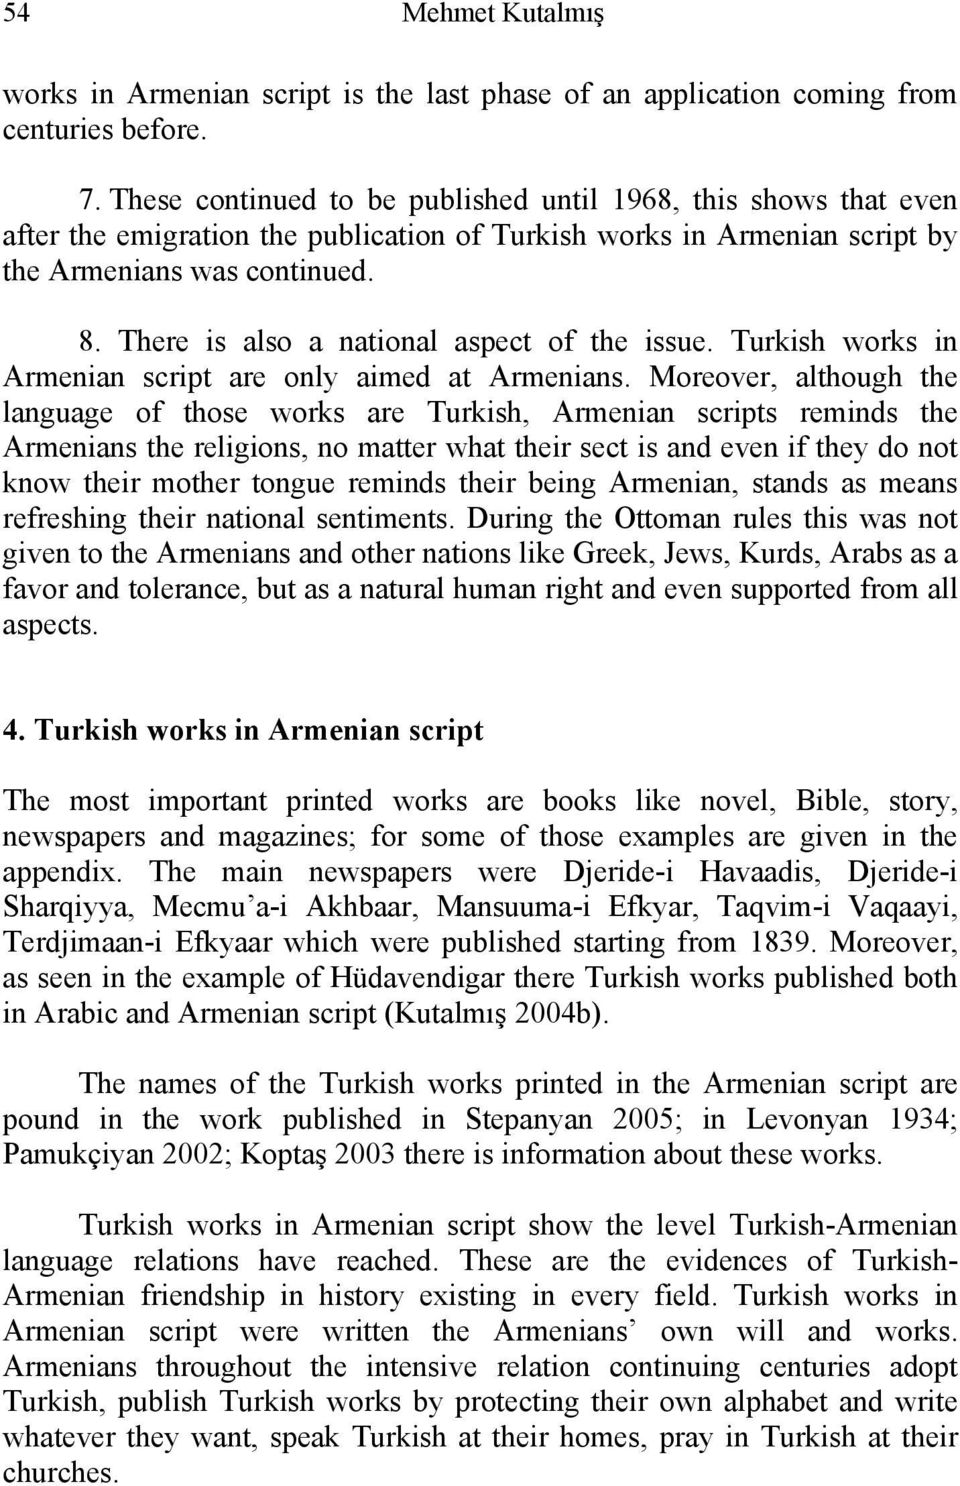 On the Turkish in Armenian Script - PDF